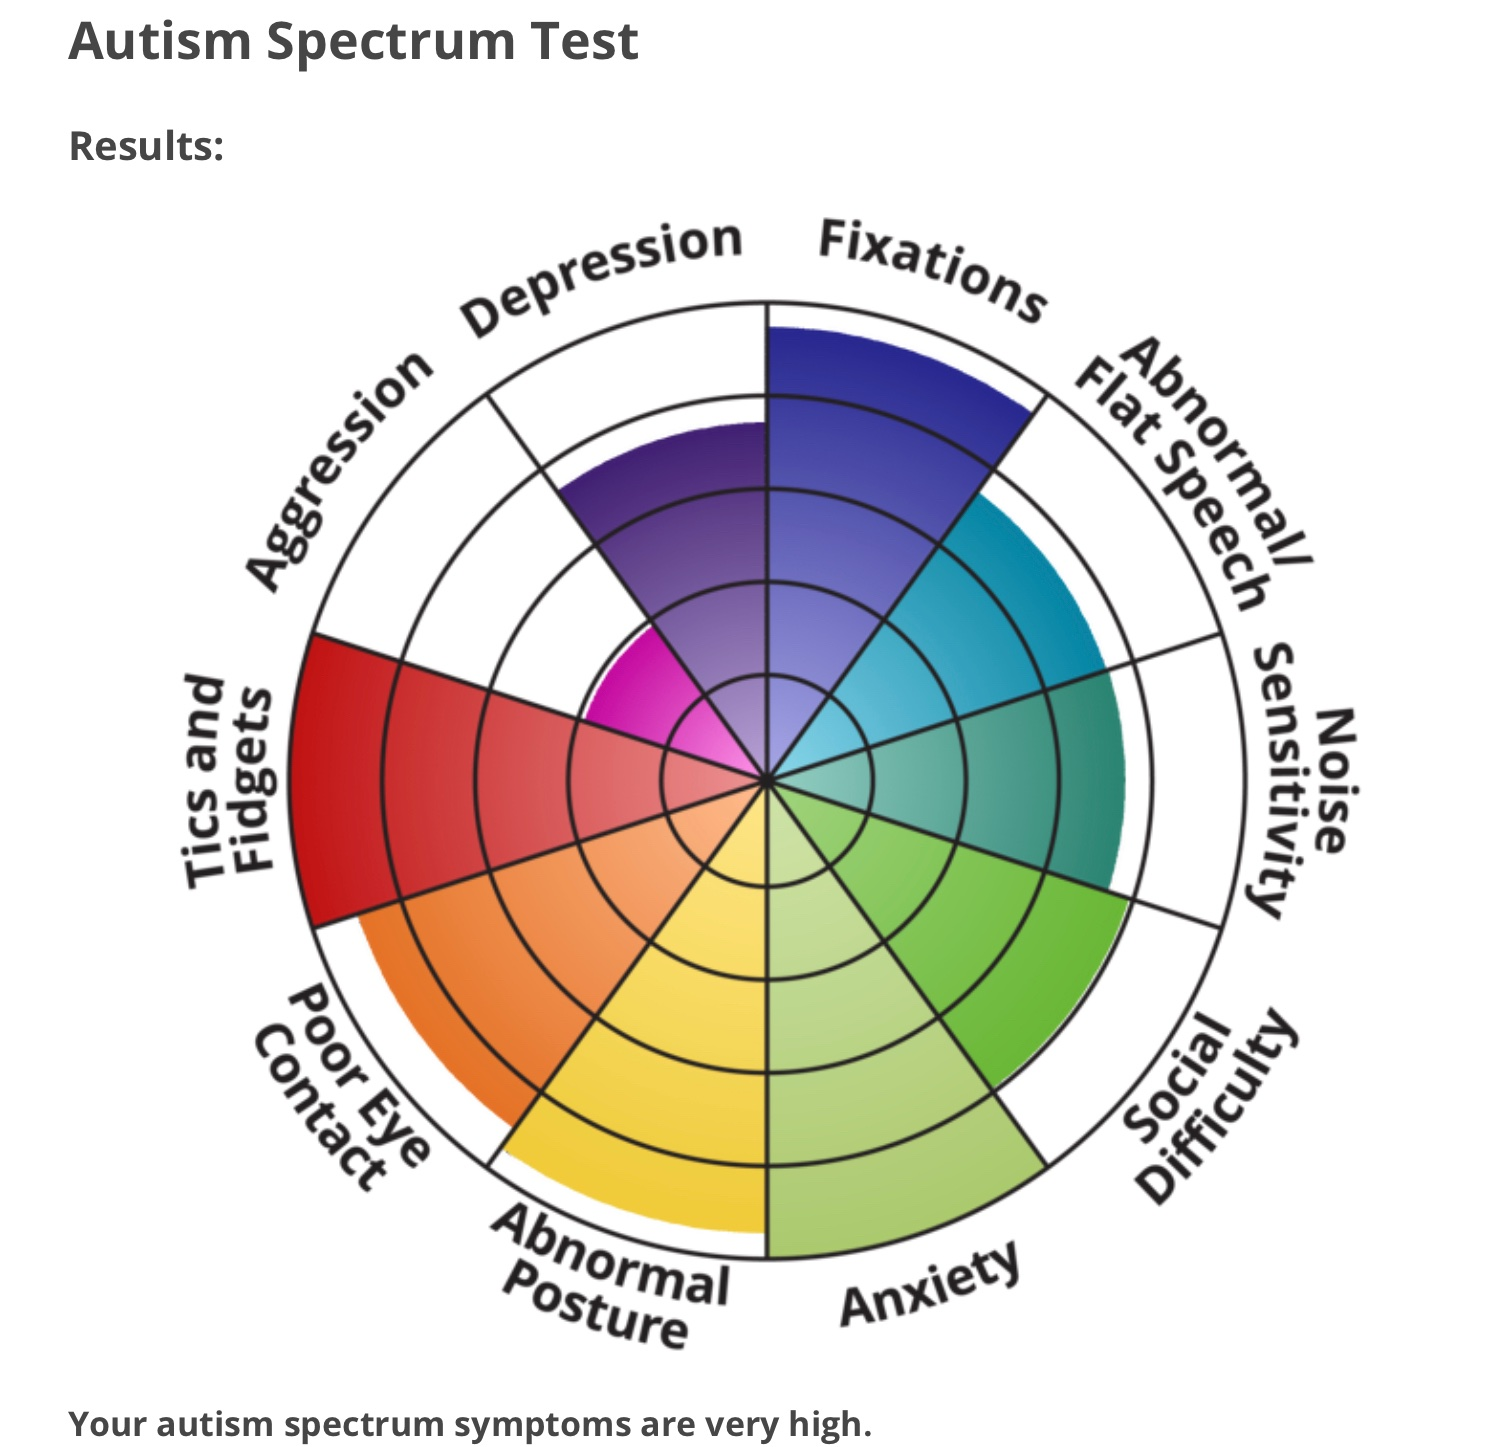 Autism results very high